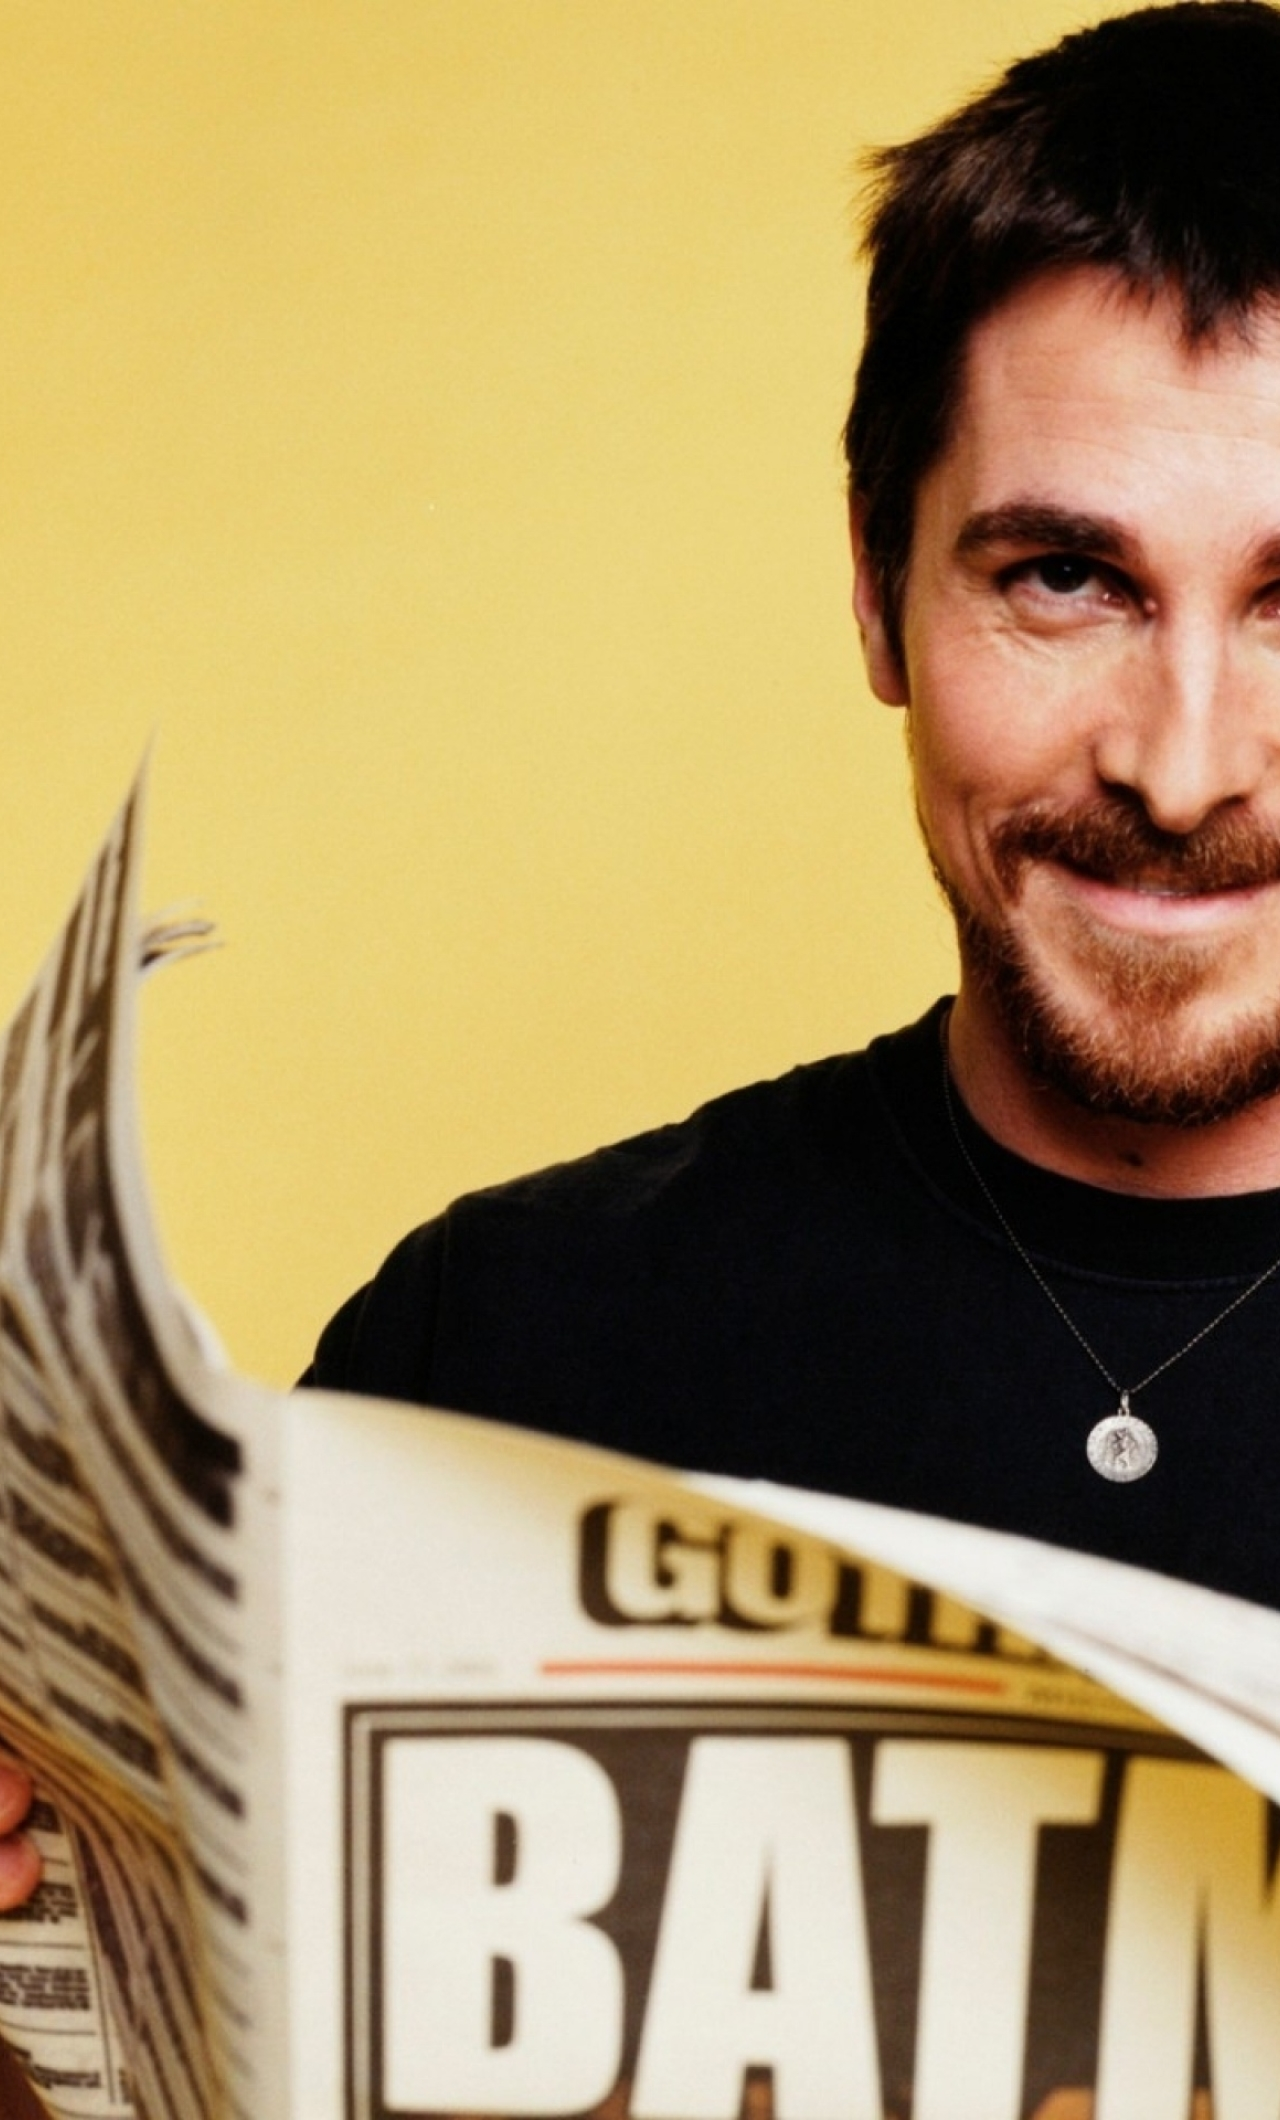 Download Christian Bale Cool Photoshoot 2160x3840 Rk 2 Rs